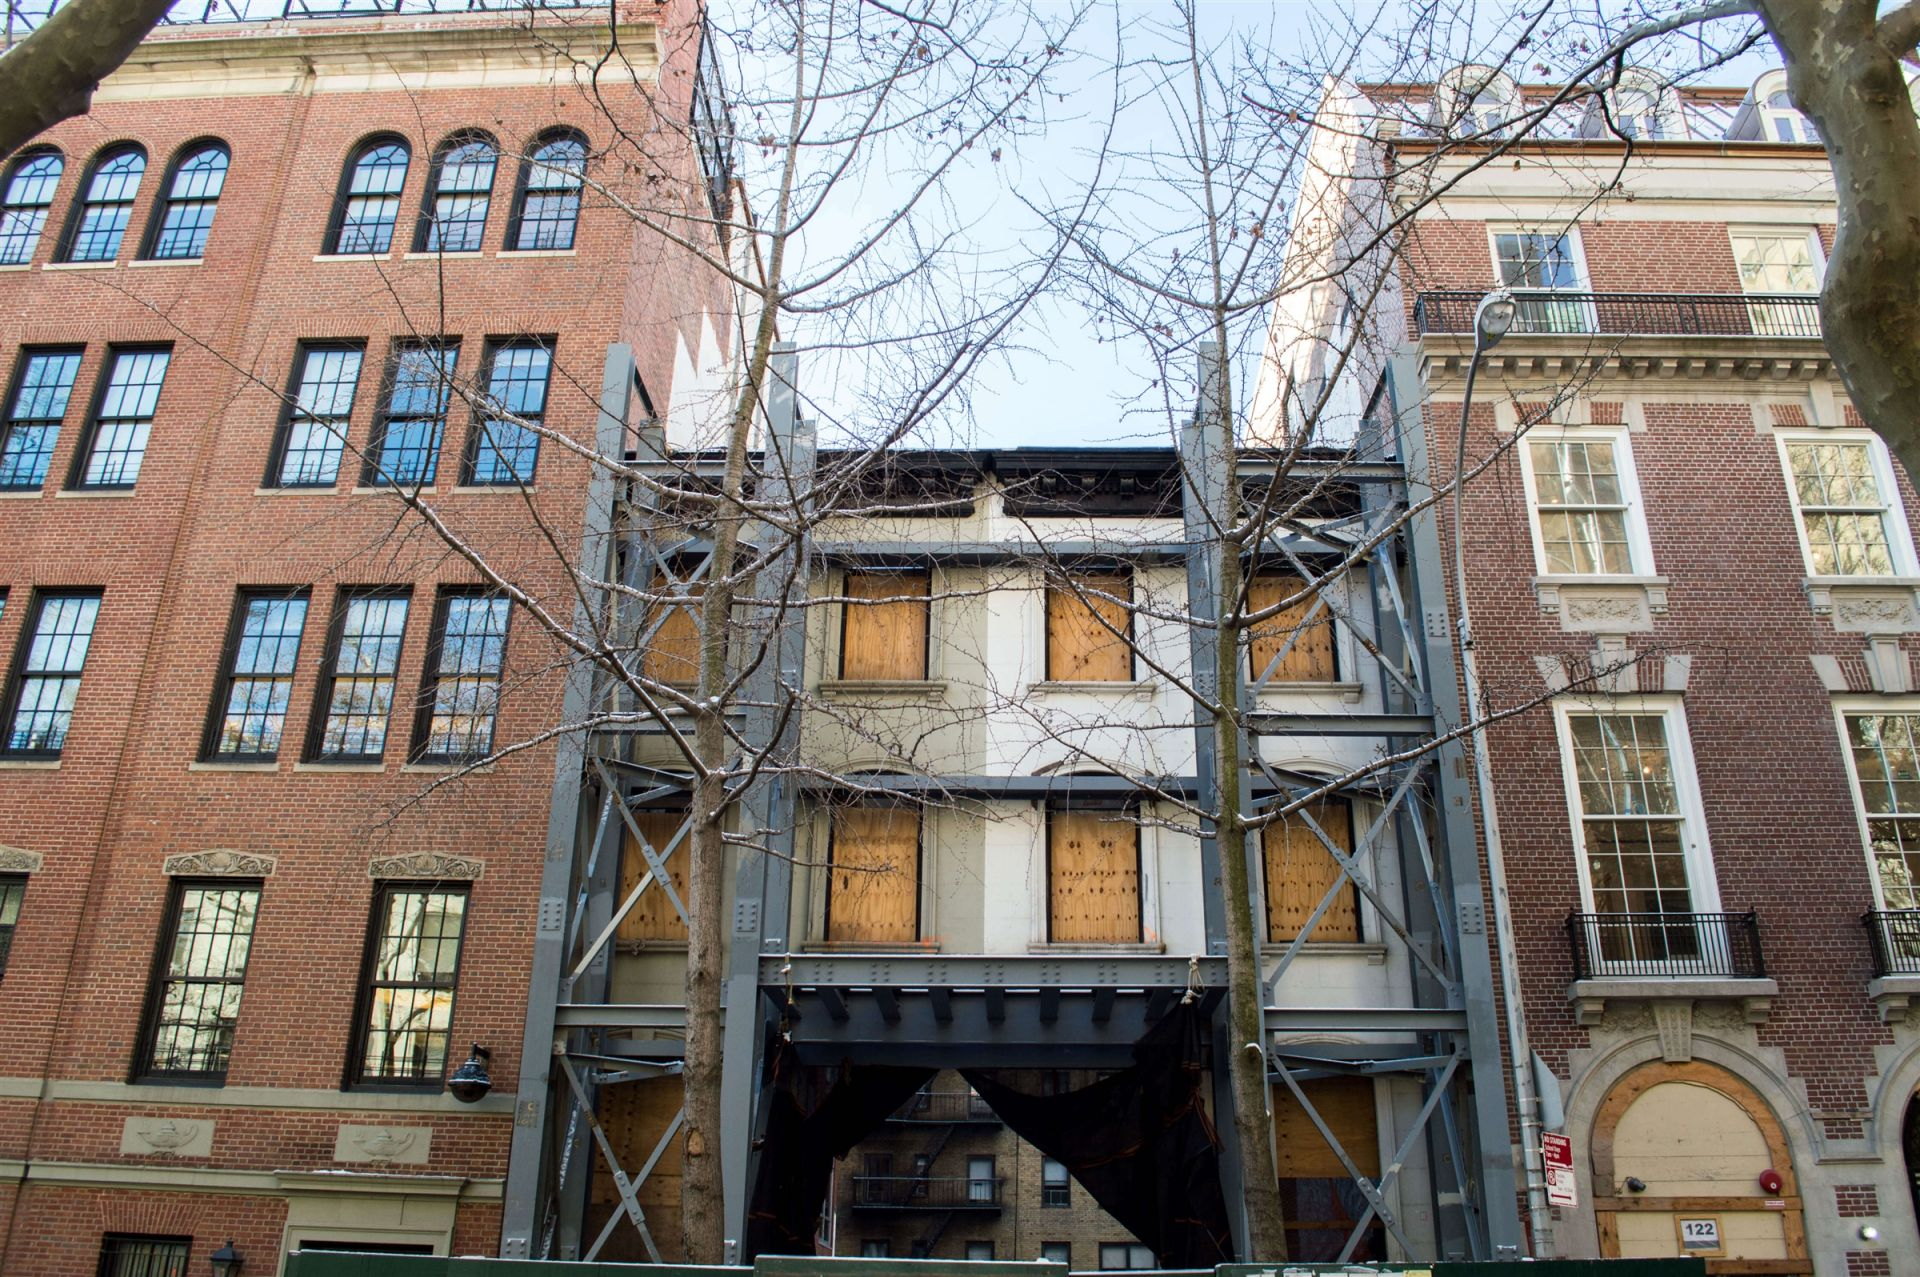 Allen-Stevenson began demolition on the contiguous townhouses at 126 and 128 East 78th Street during the summer of 2015.